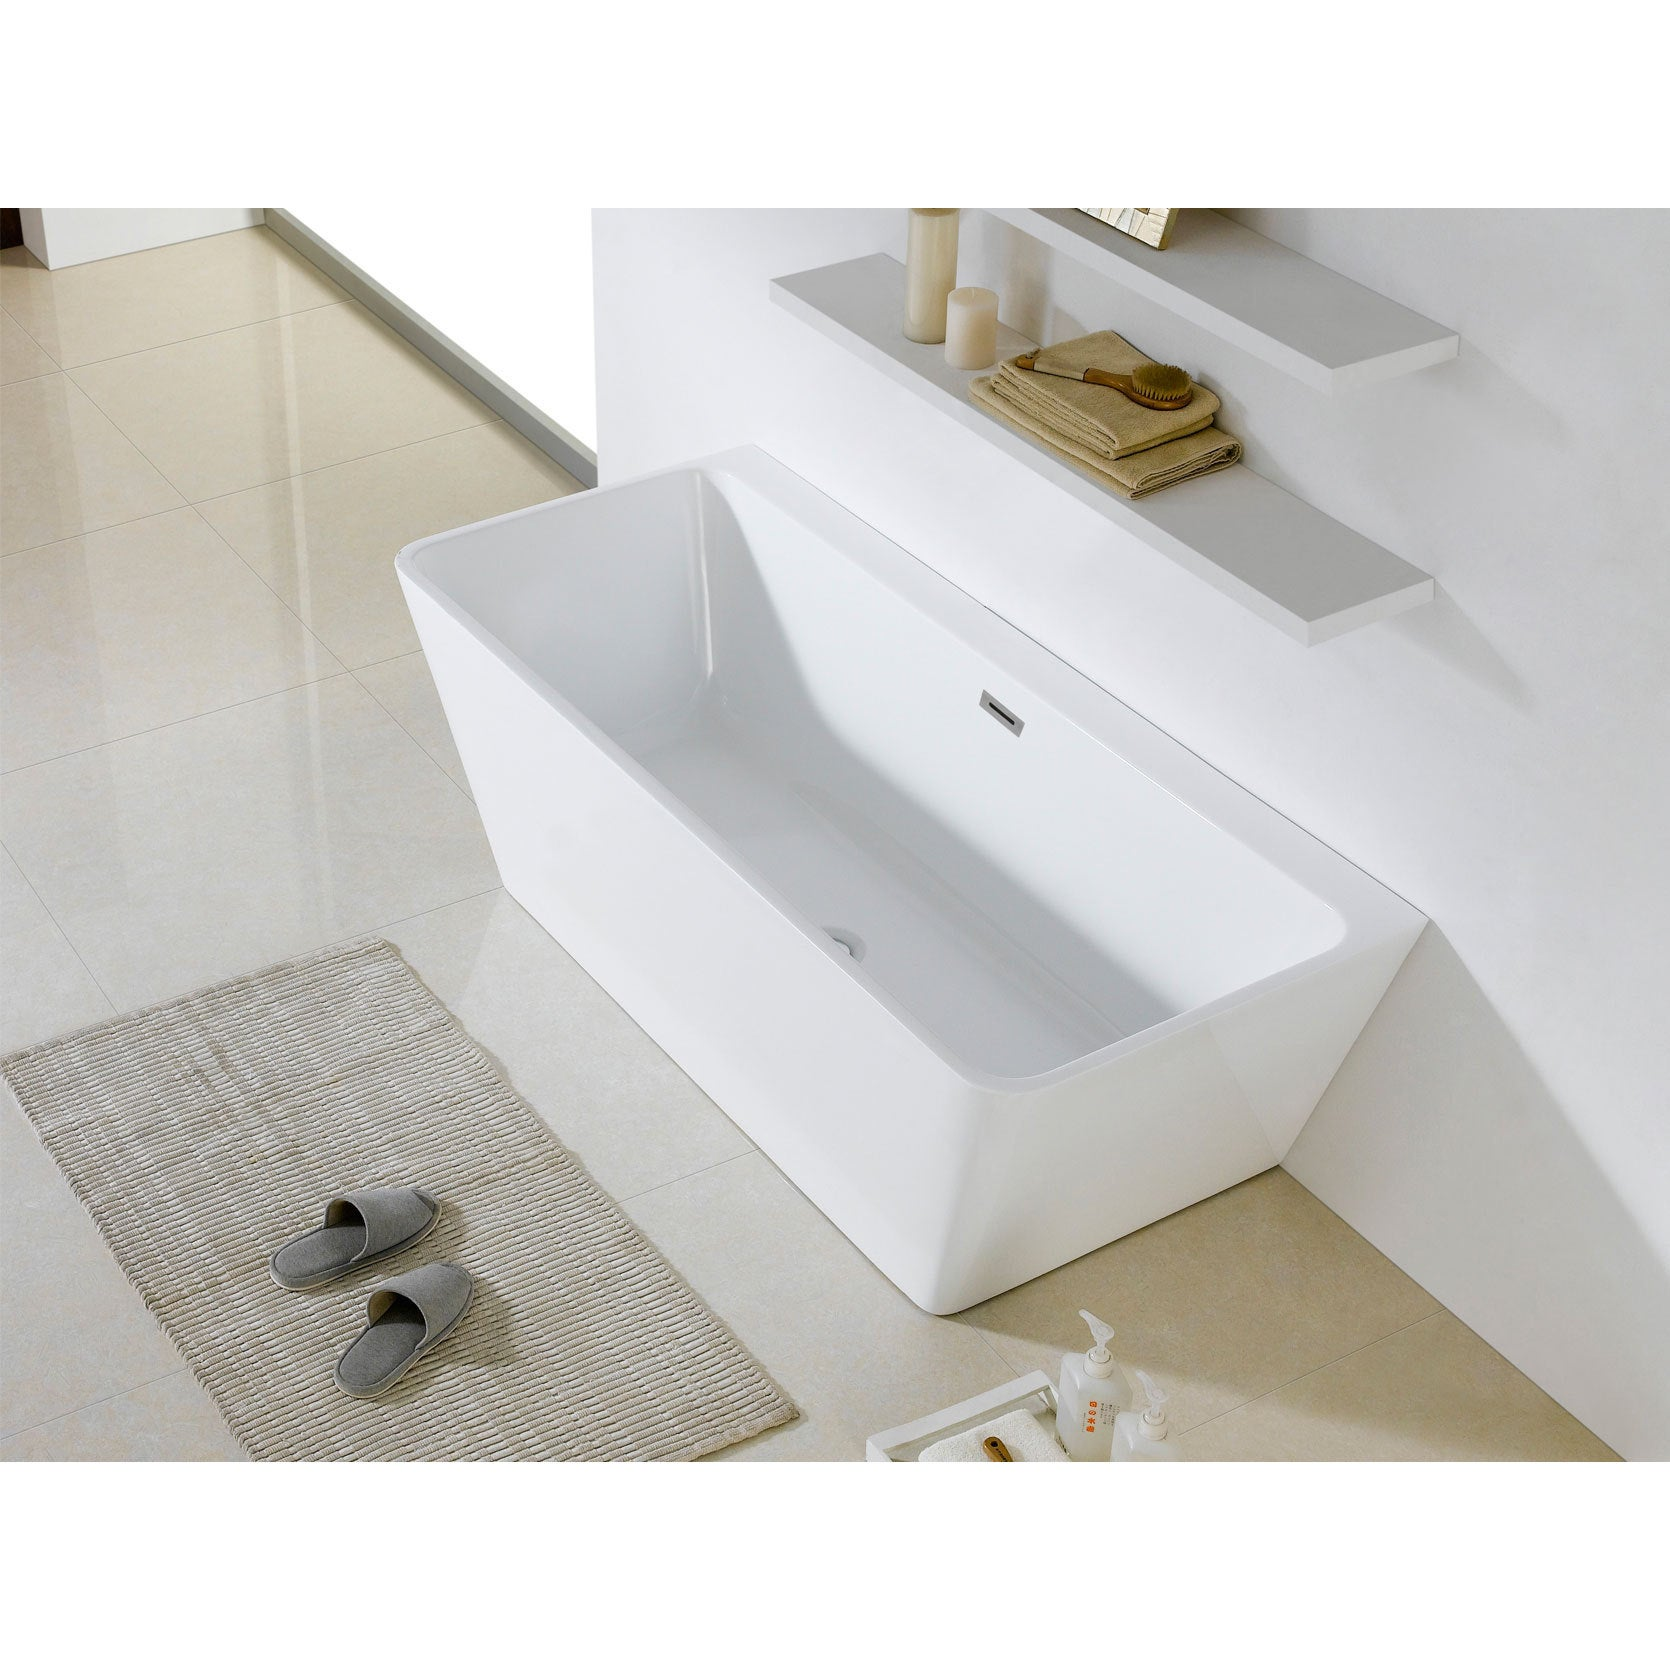 inch product white soaking overstock x bathtub tub rectangle bellagio garden today home free shipping